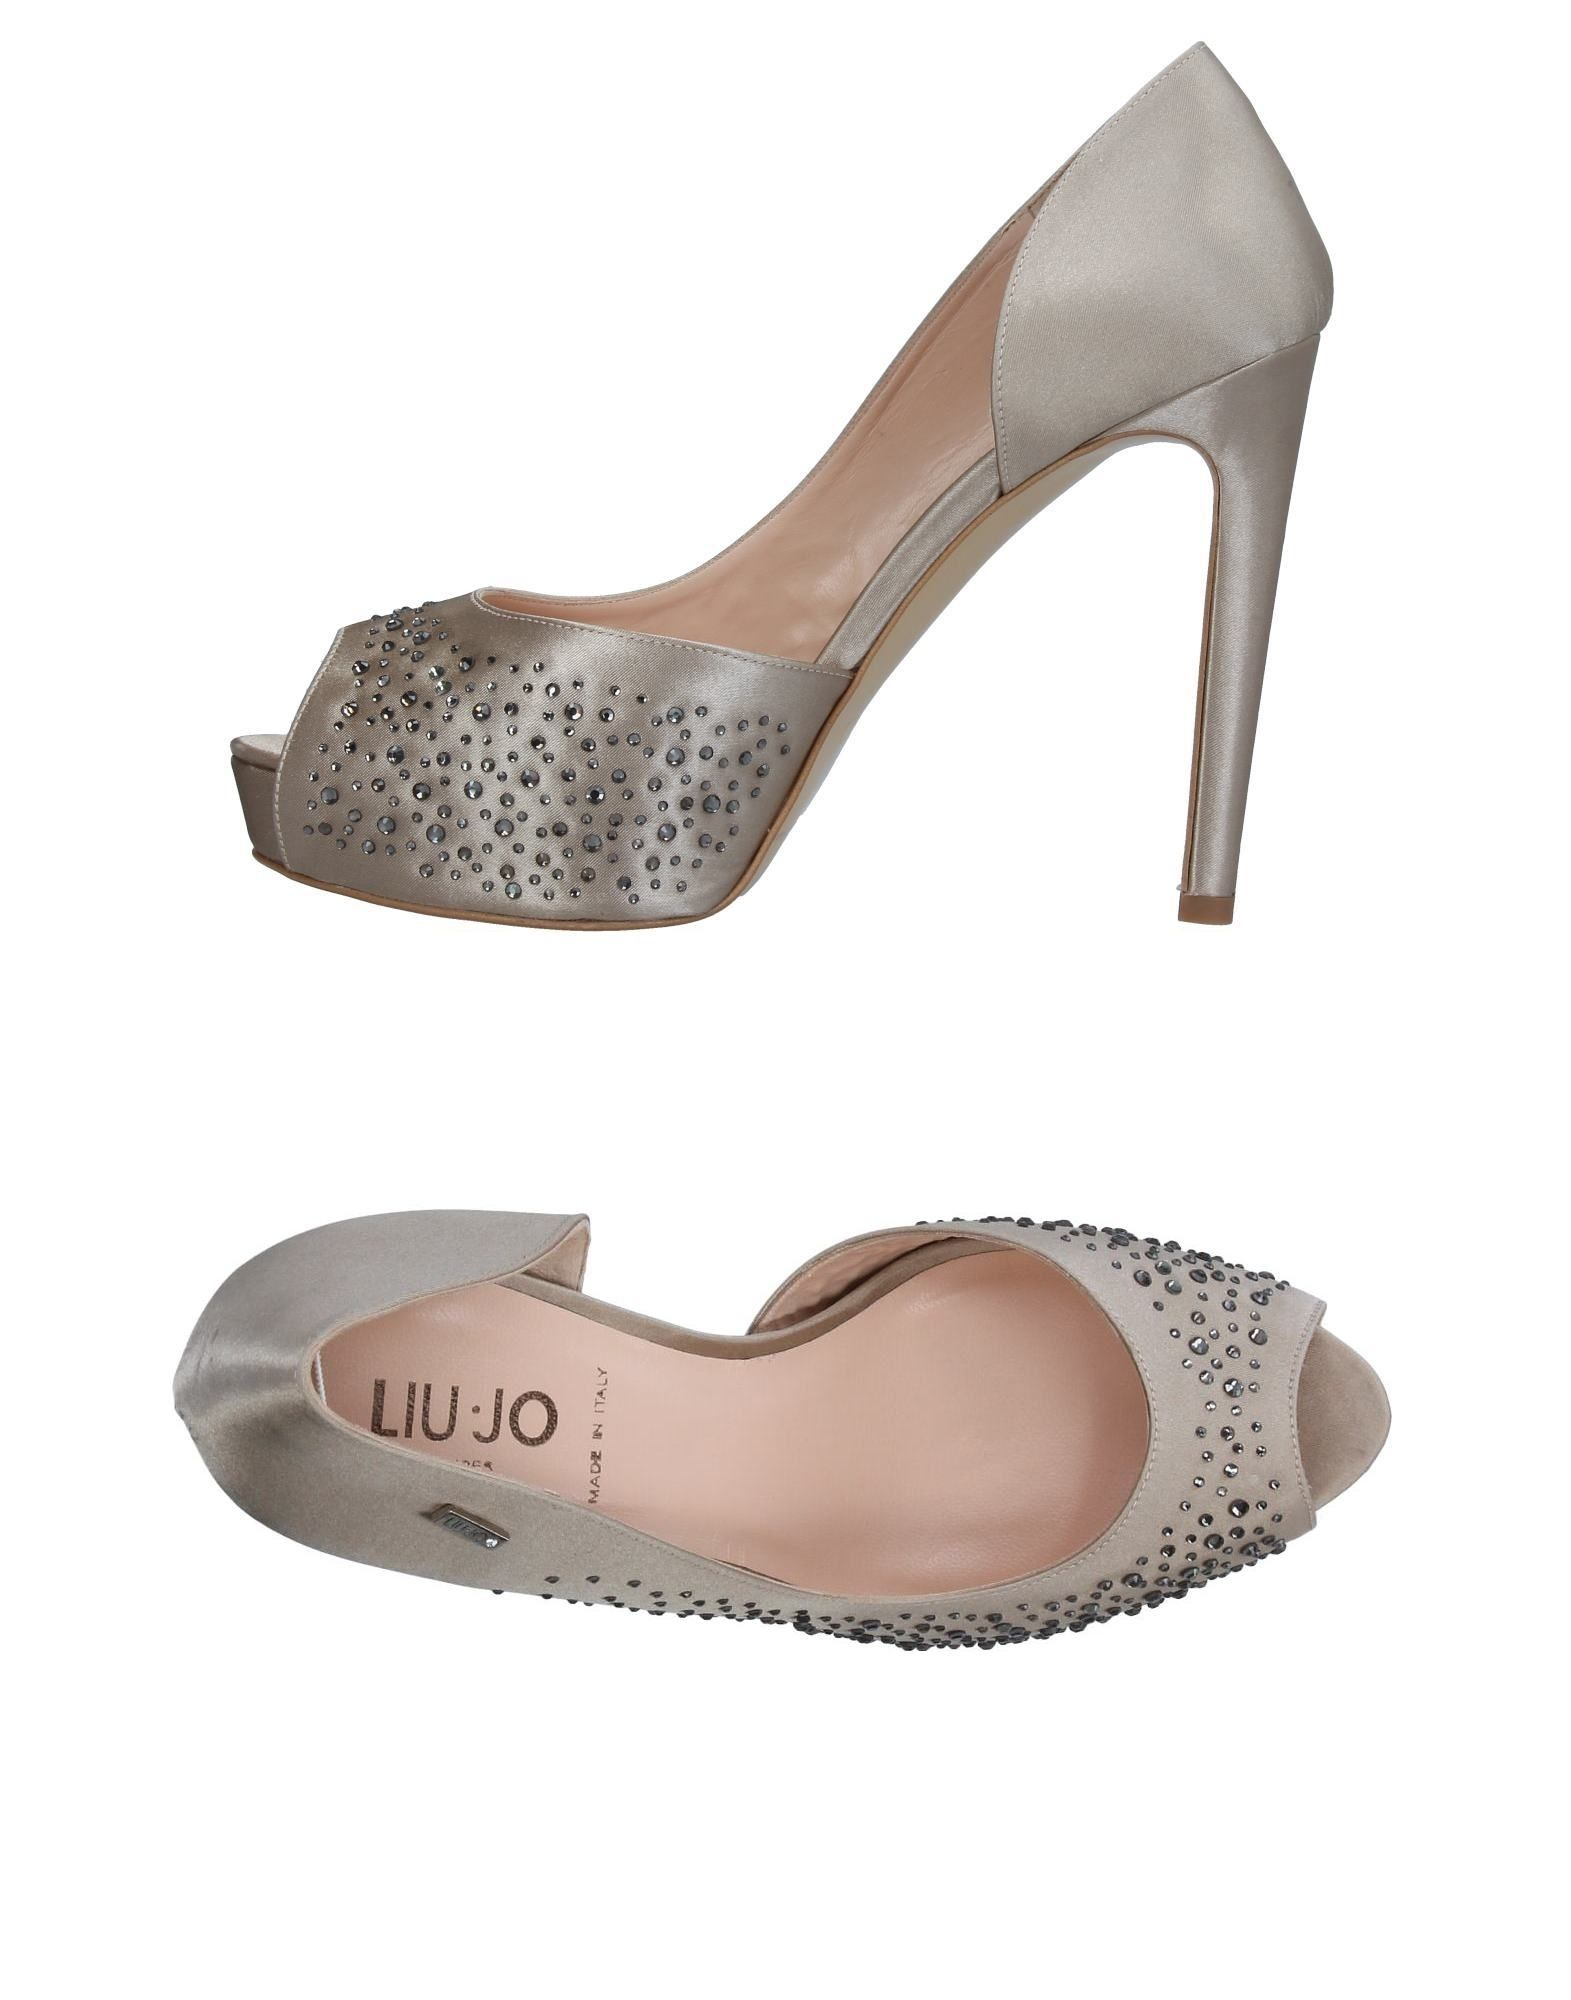 LIU •JO SHOES Туфли туфли primigi nature shoes туфли